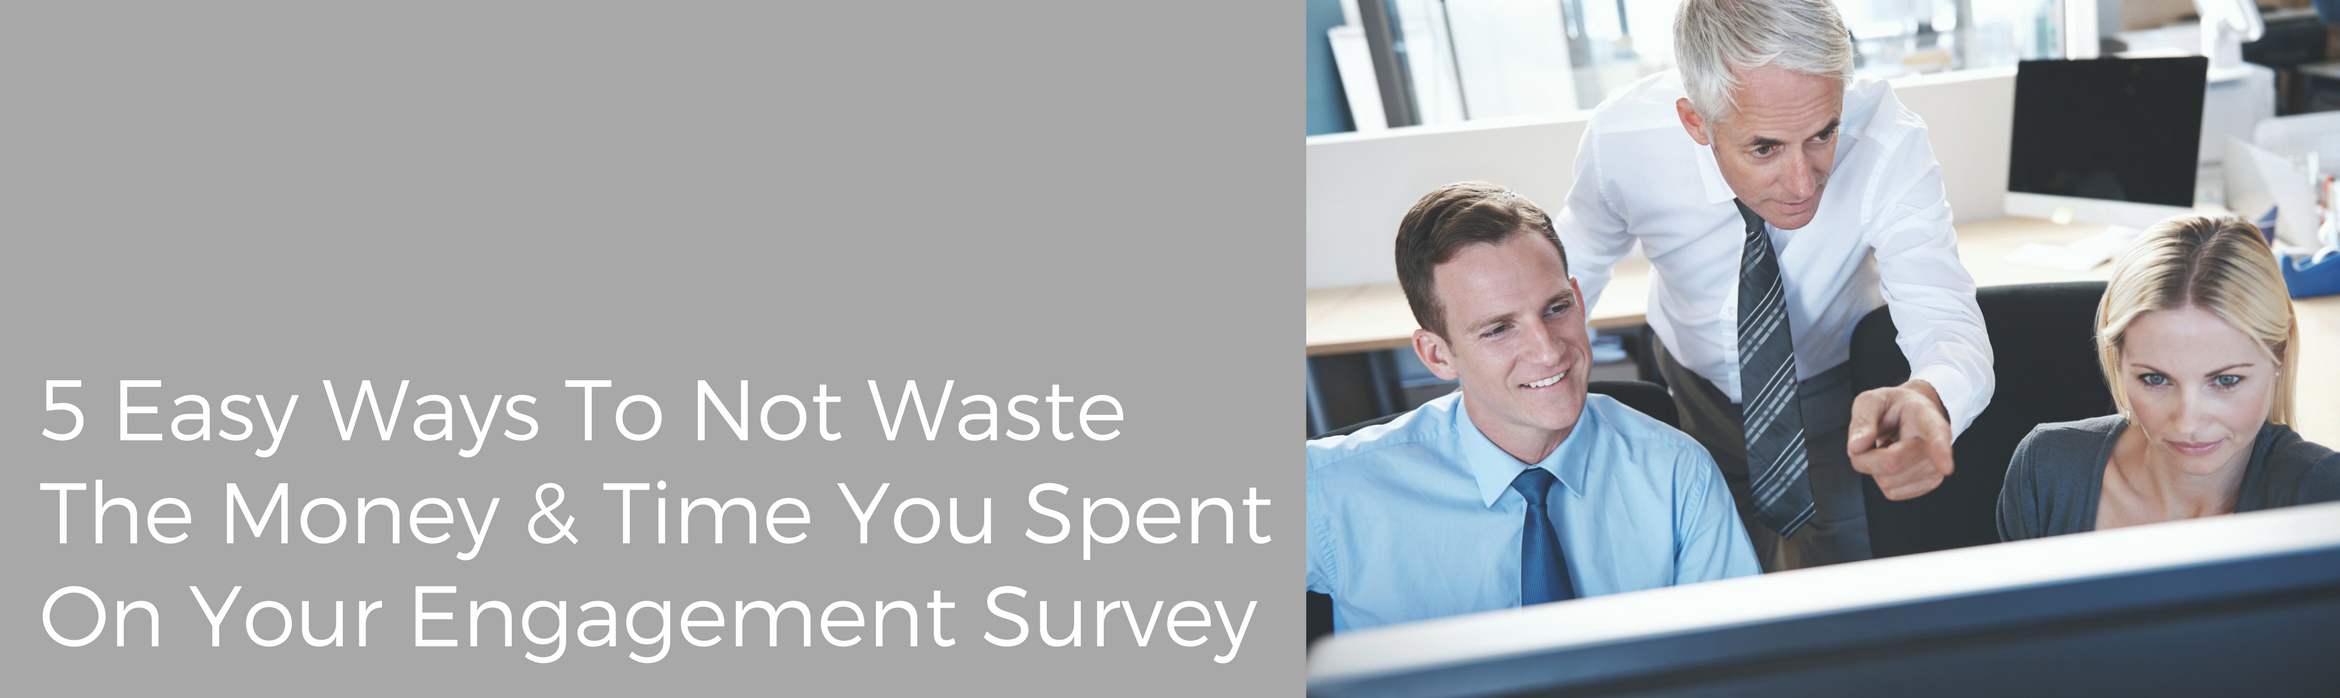 5 Easy Ways to Not Waste the Money & Time You Spent on Your Engagement Survey